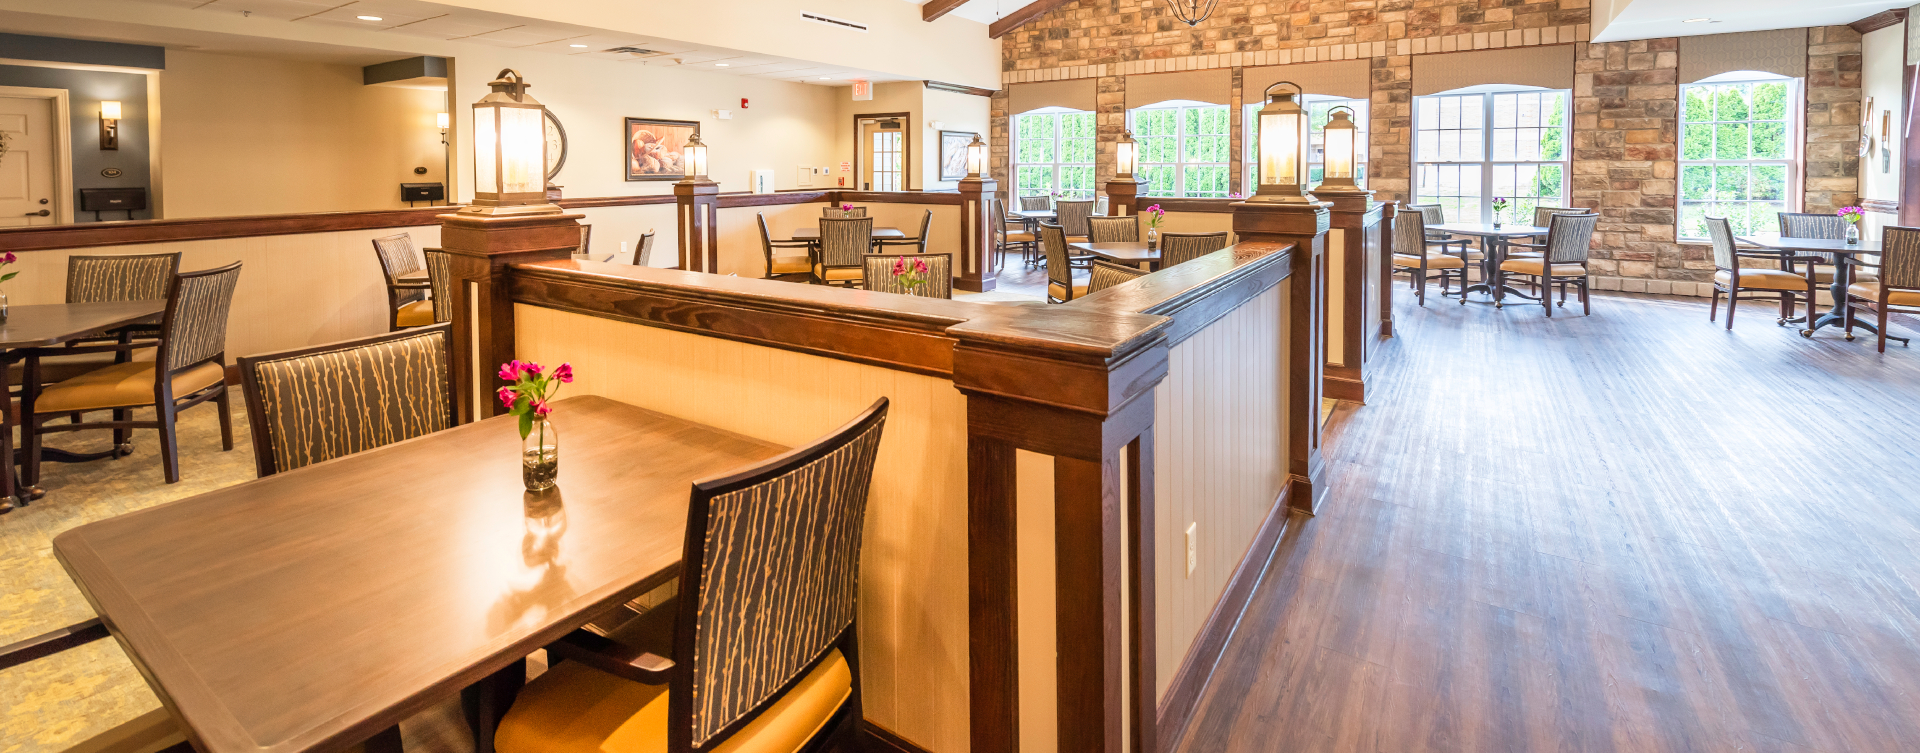 Enjoy homestyle food with made-from-scratch recipes in our dining room at Bickford of Shelby Township